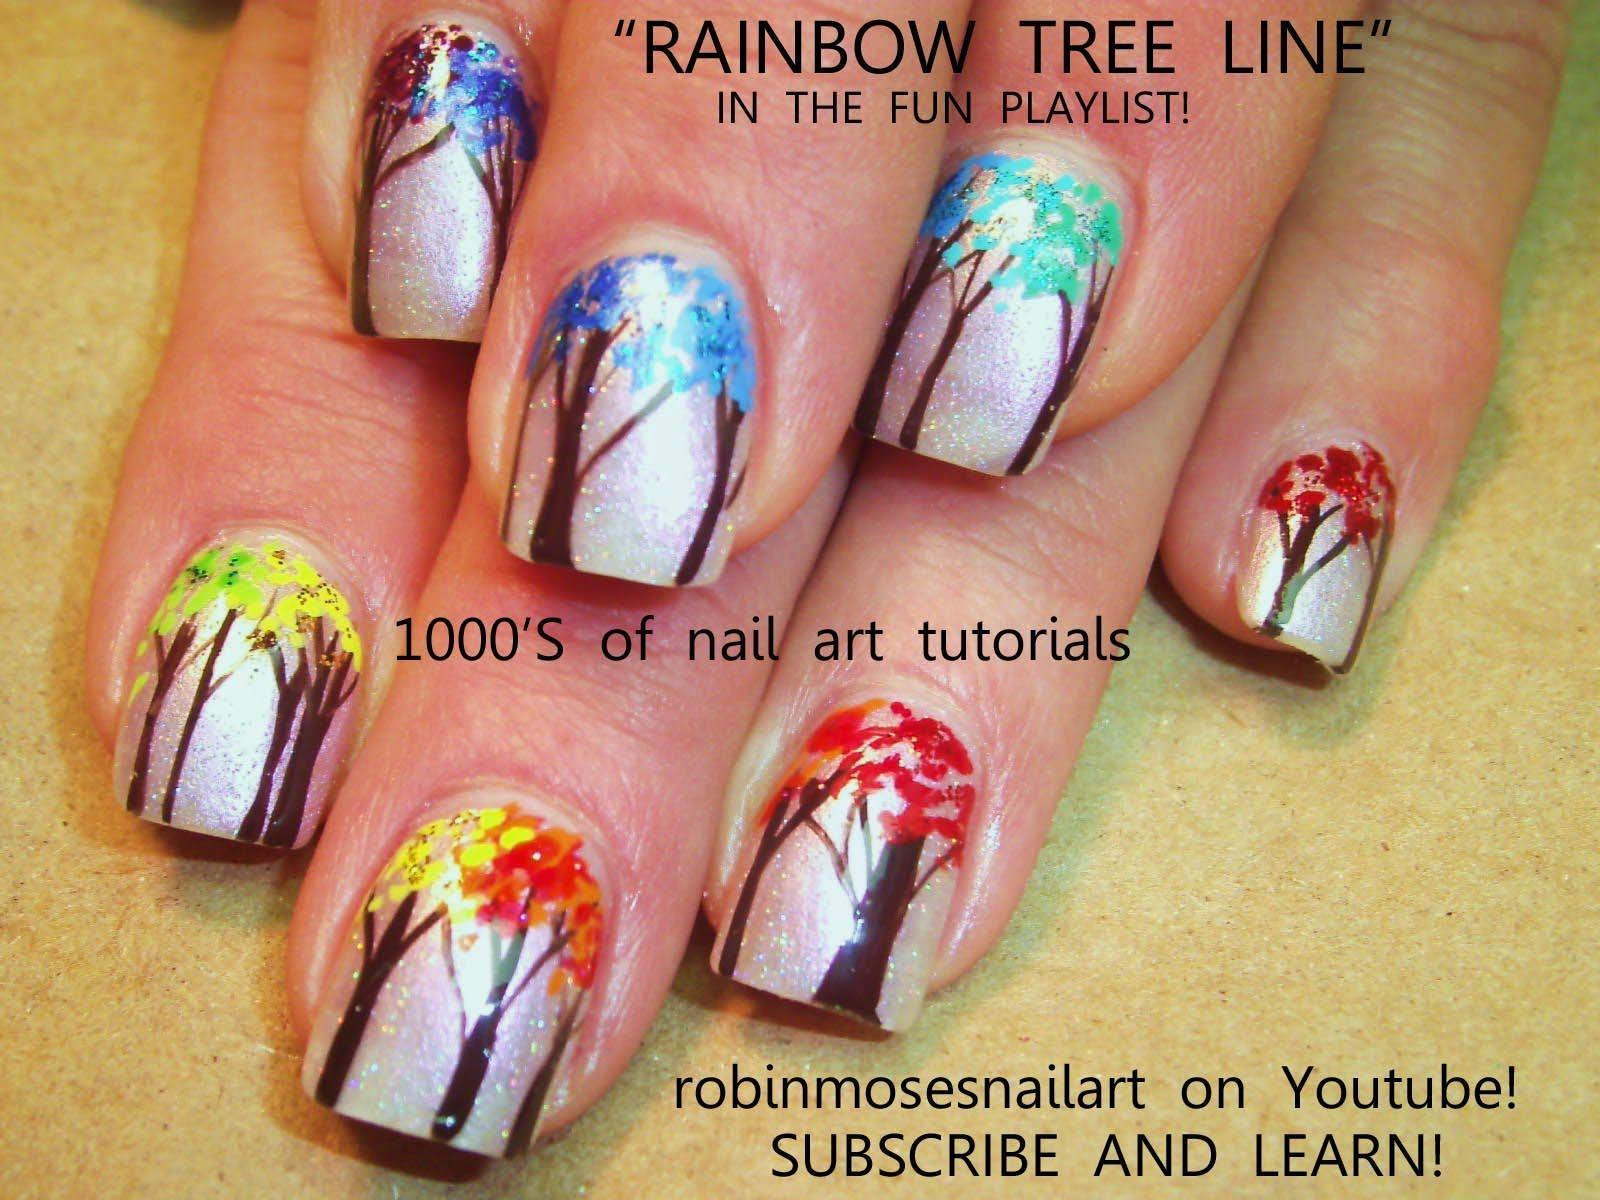 Easy Rainbow Tree Nail Art | CUTE nail art pictures with tutorials ...